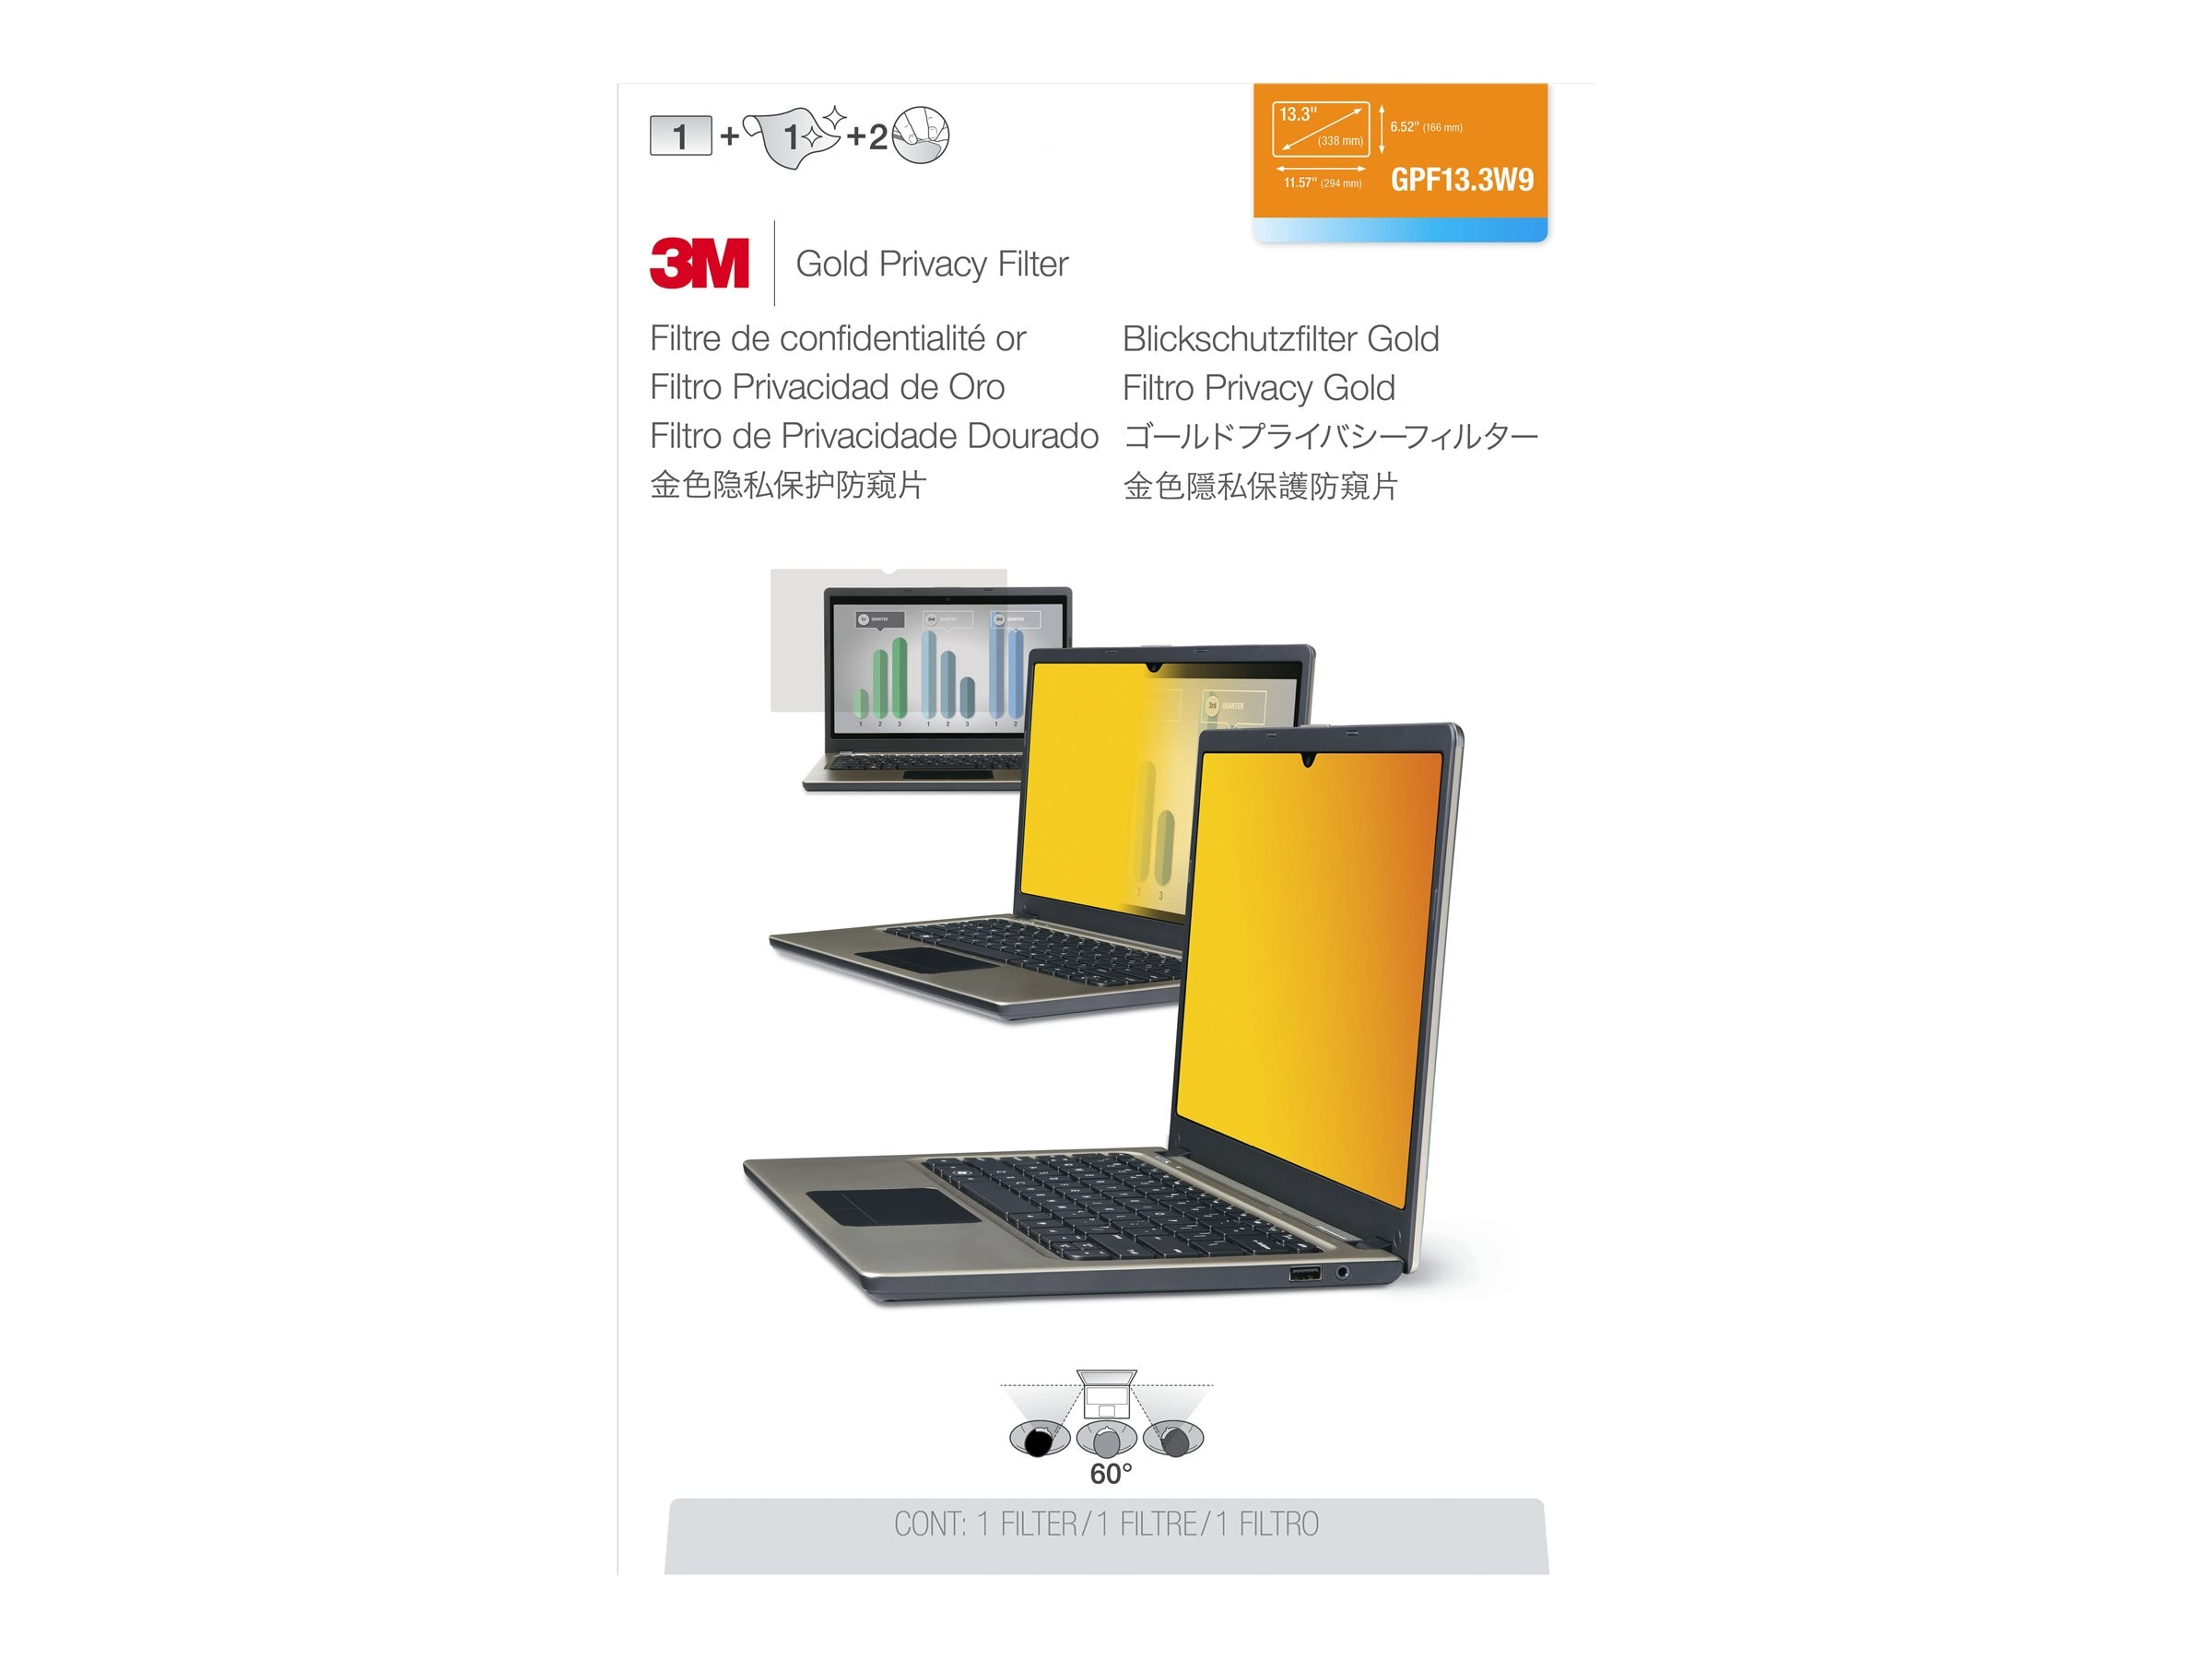 3M 13.3 Widescreen Gold Privacy Filter, 16:9, GPF13.3W9, 11644531, Glare Filters & Privacy Screens